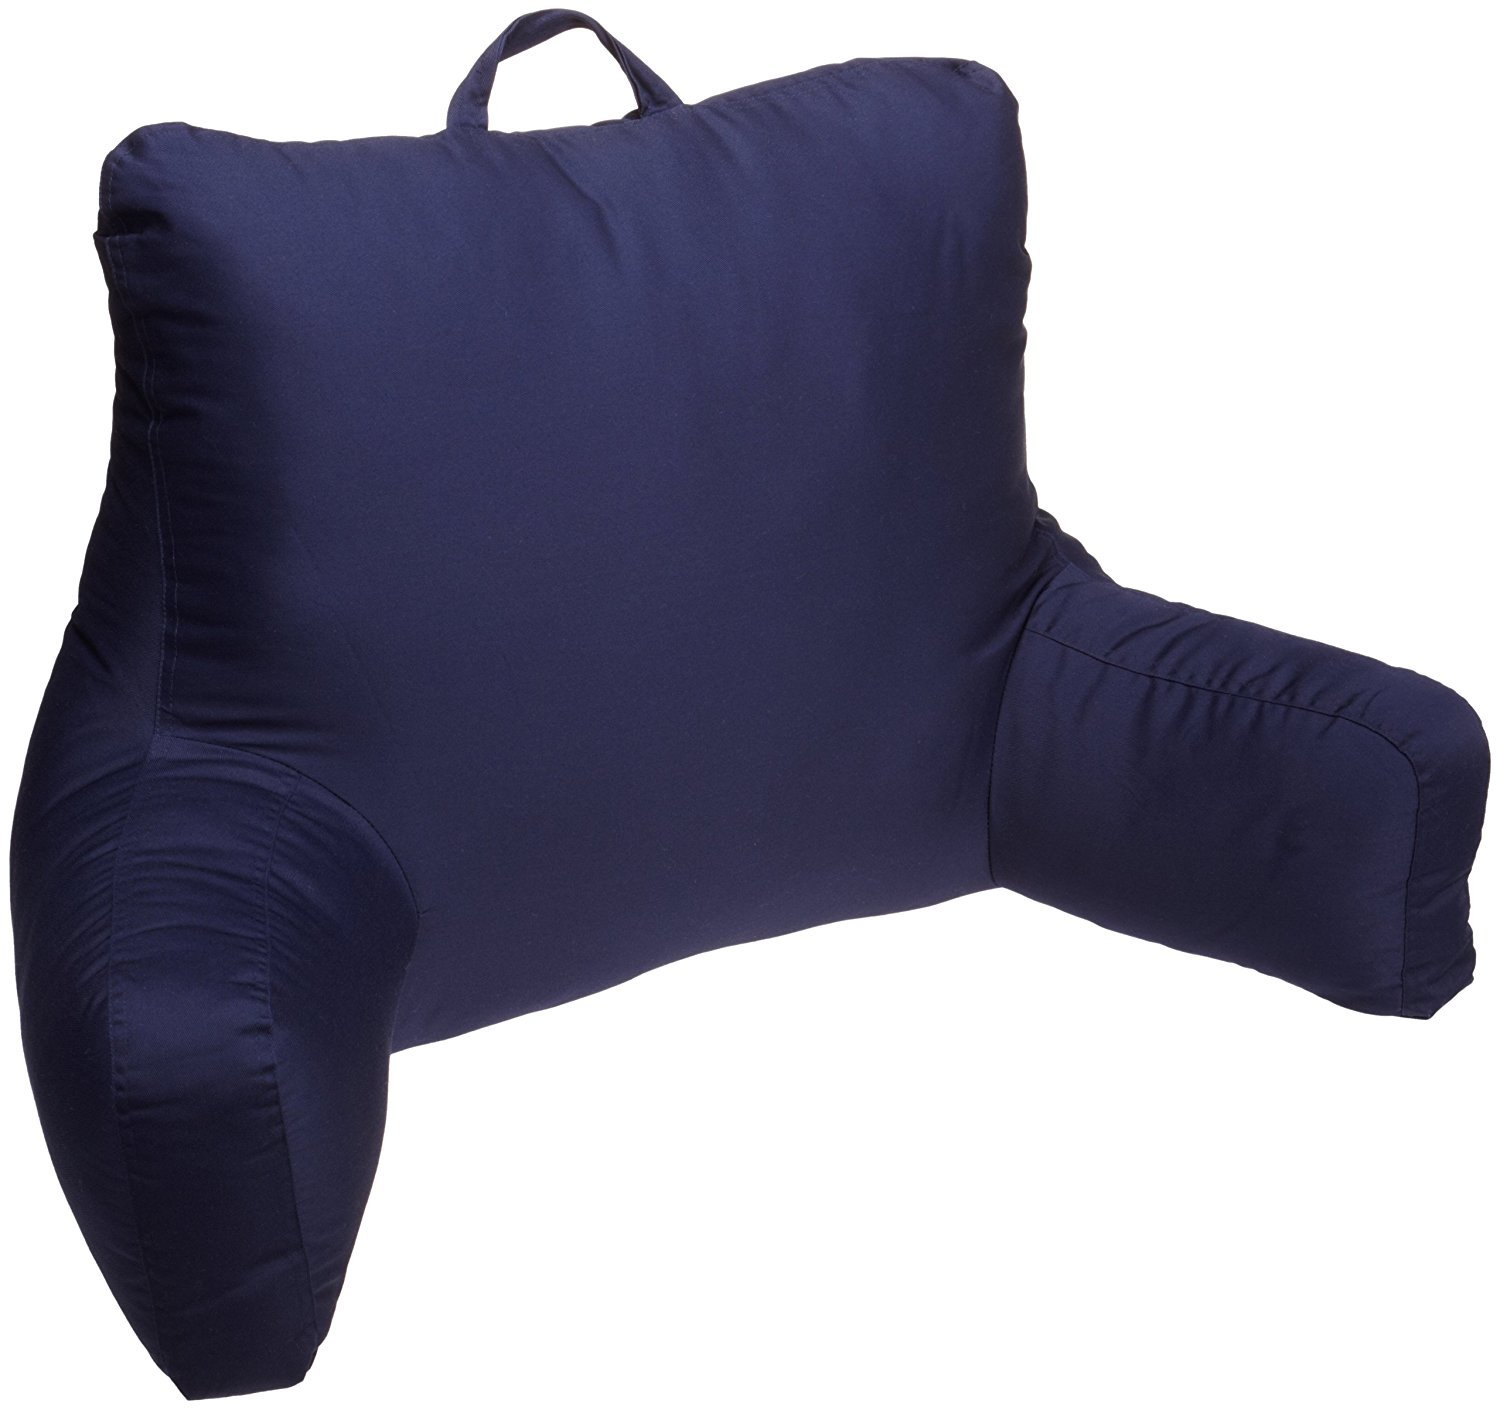 Back Cushion For Bed Home Furniture Design